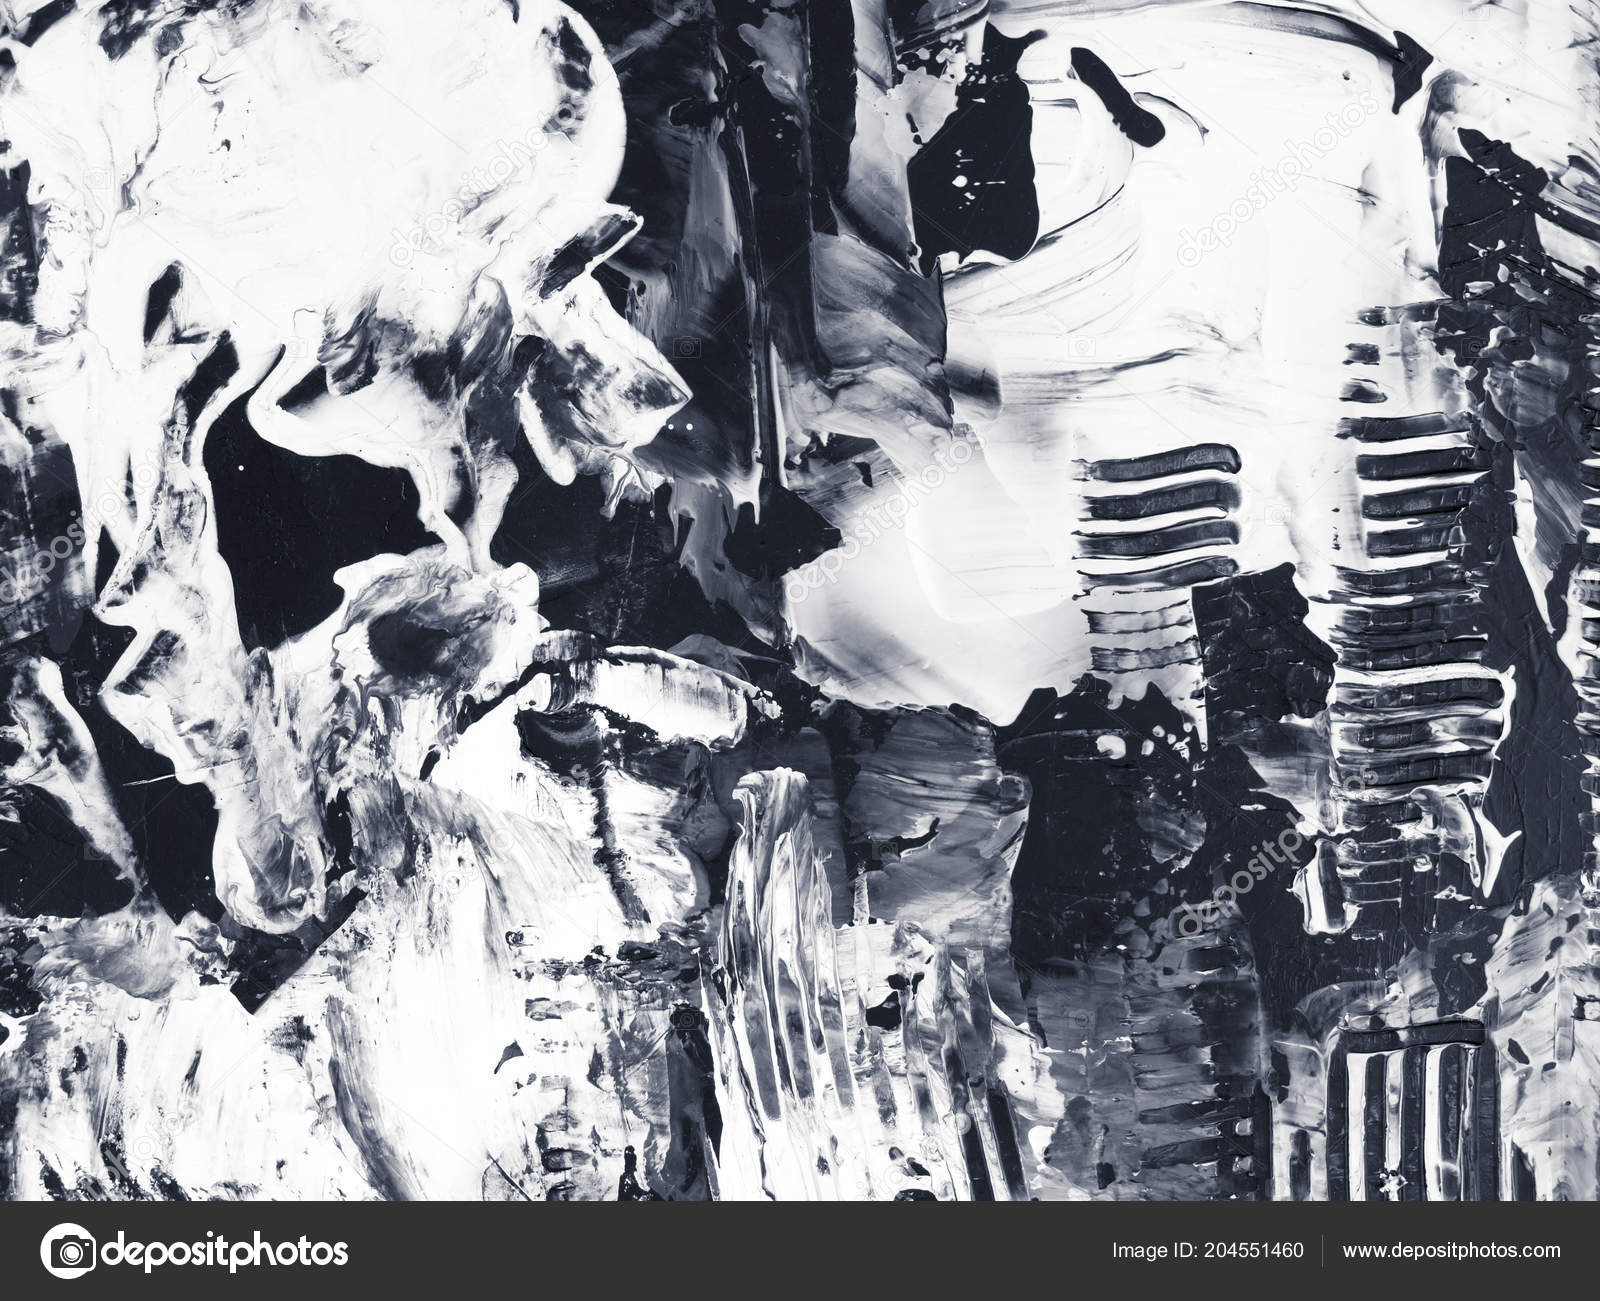 Black And White Acrylic Painting Abstract - HD Wallpaper